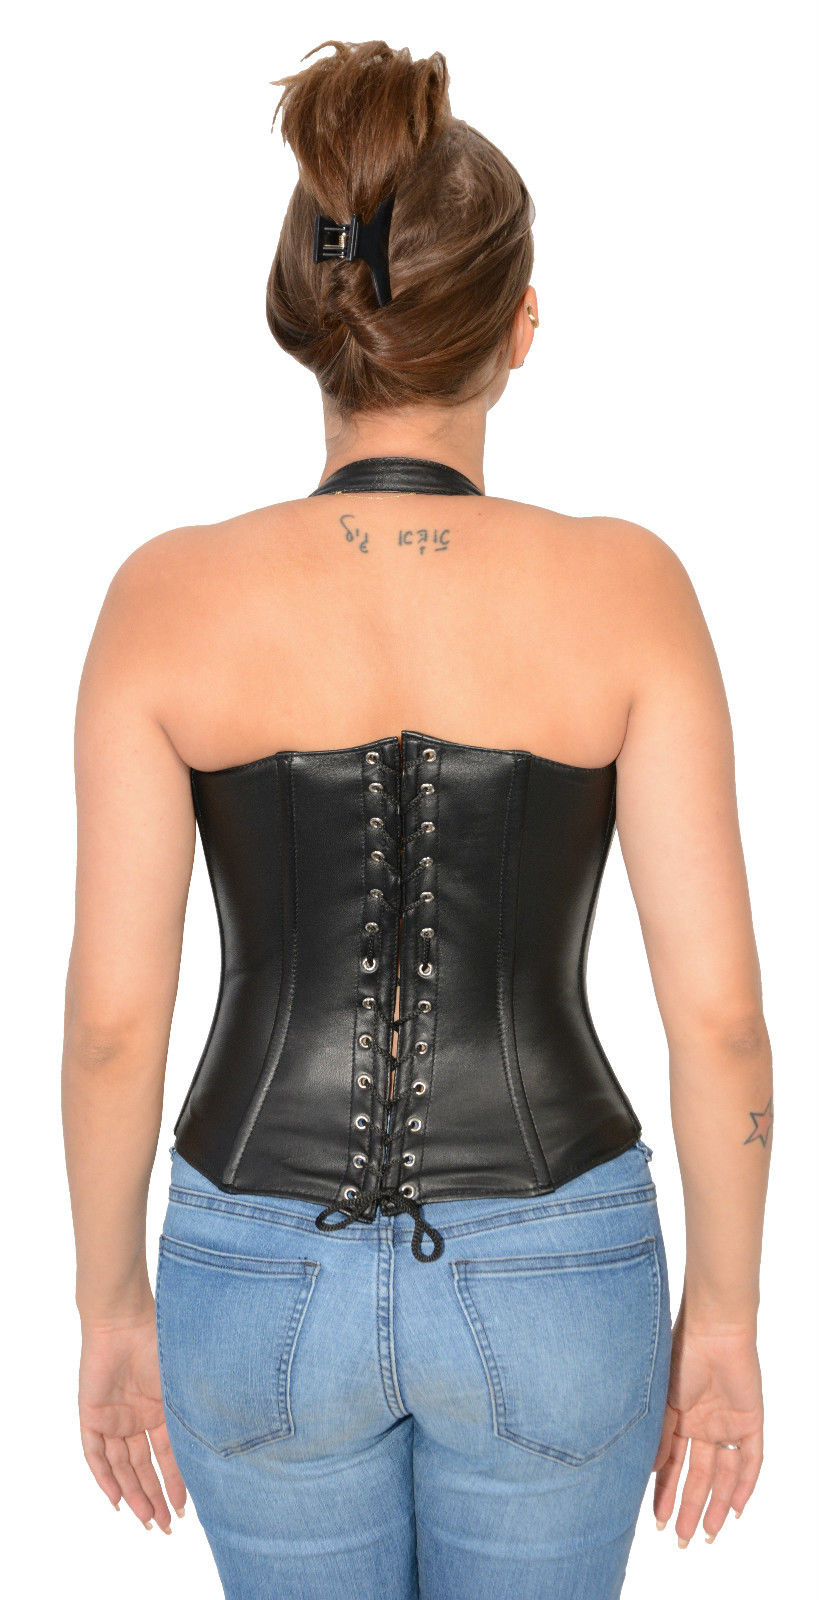 302c3ab3628 WOMEN S REAL LAMB LEATHER REINFORCED STEEL BONED SEXY CORSET BACK ...